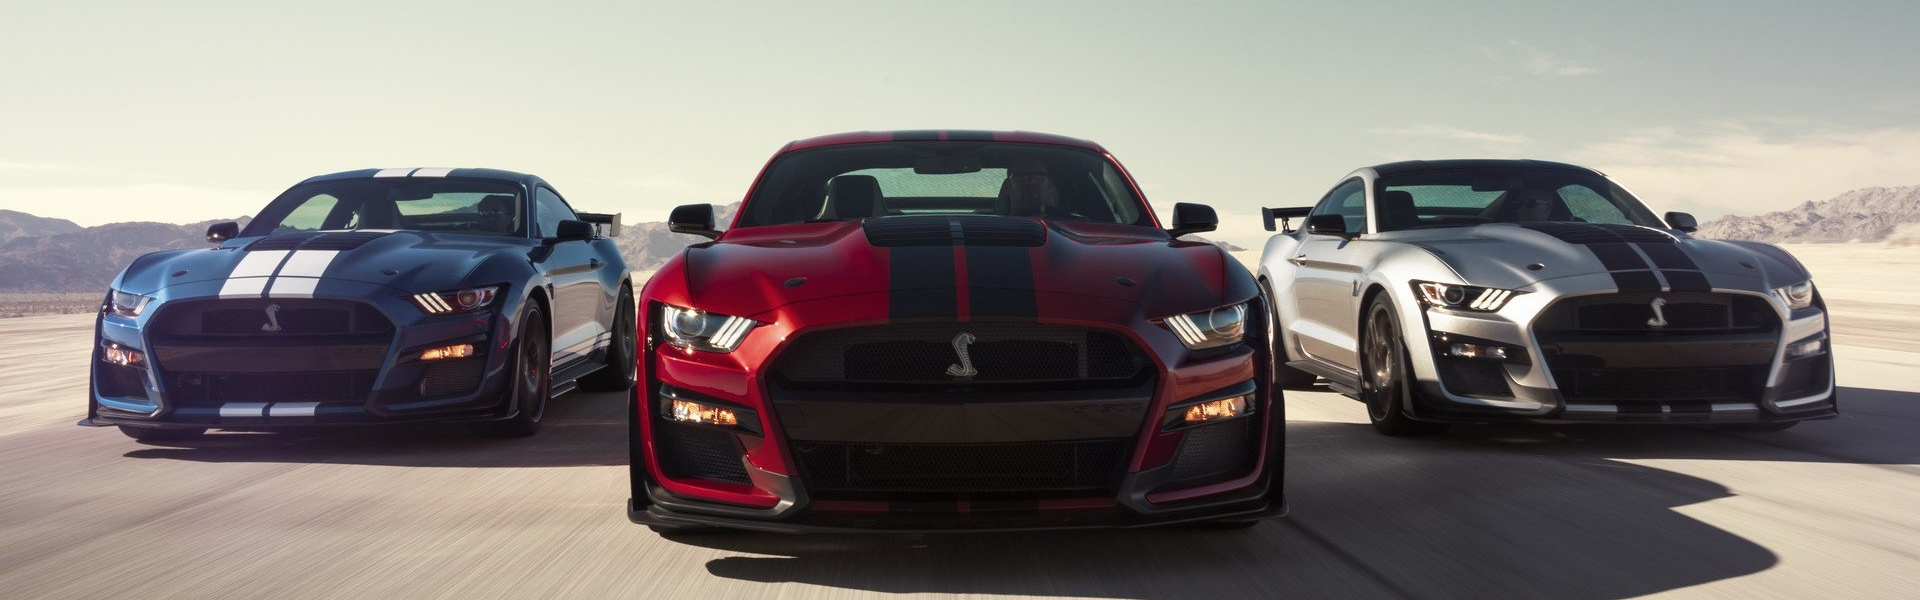 2020-ford-mustang-shelby-gt500-8.jpg